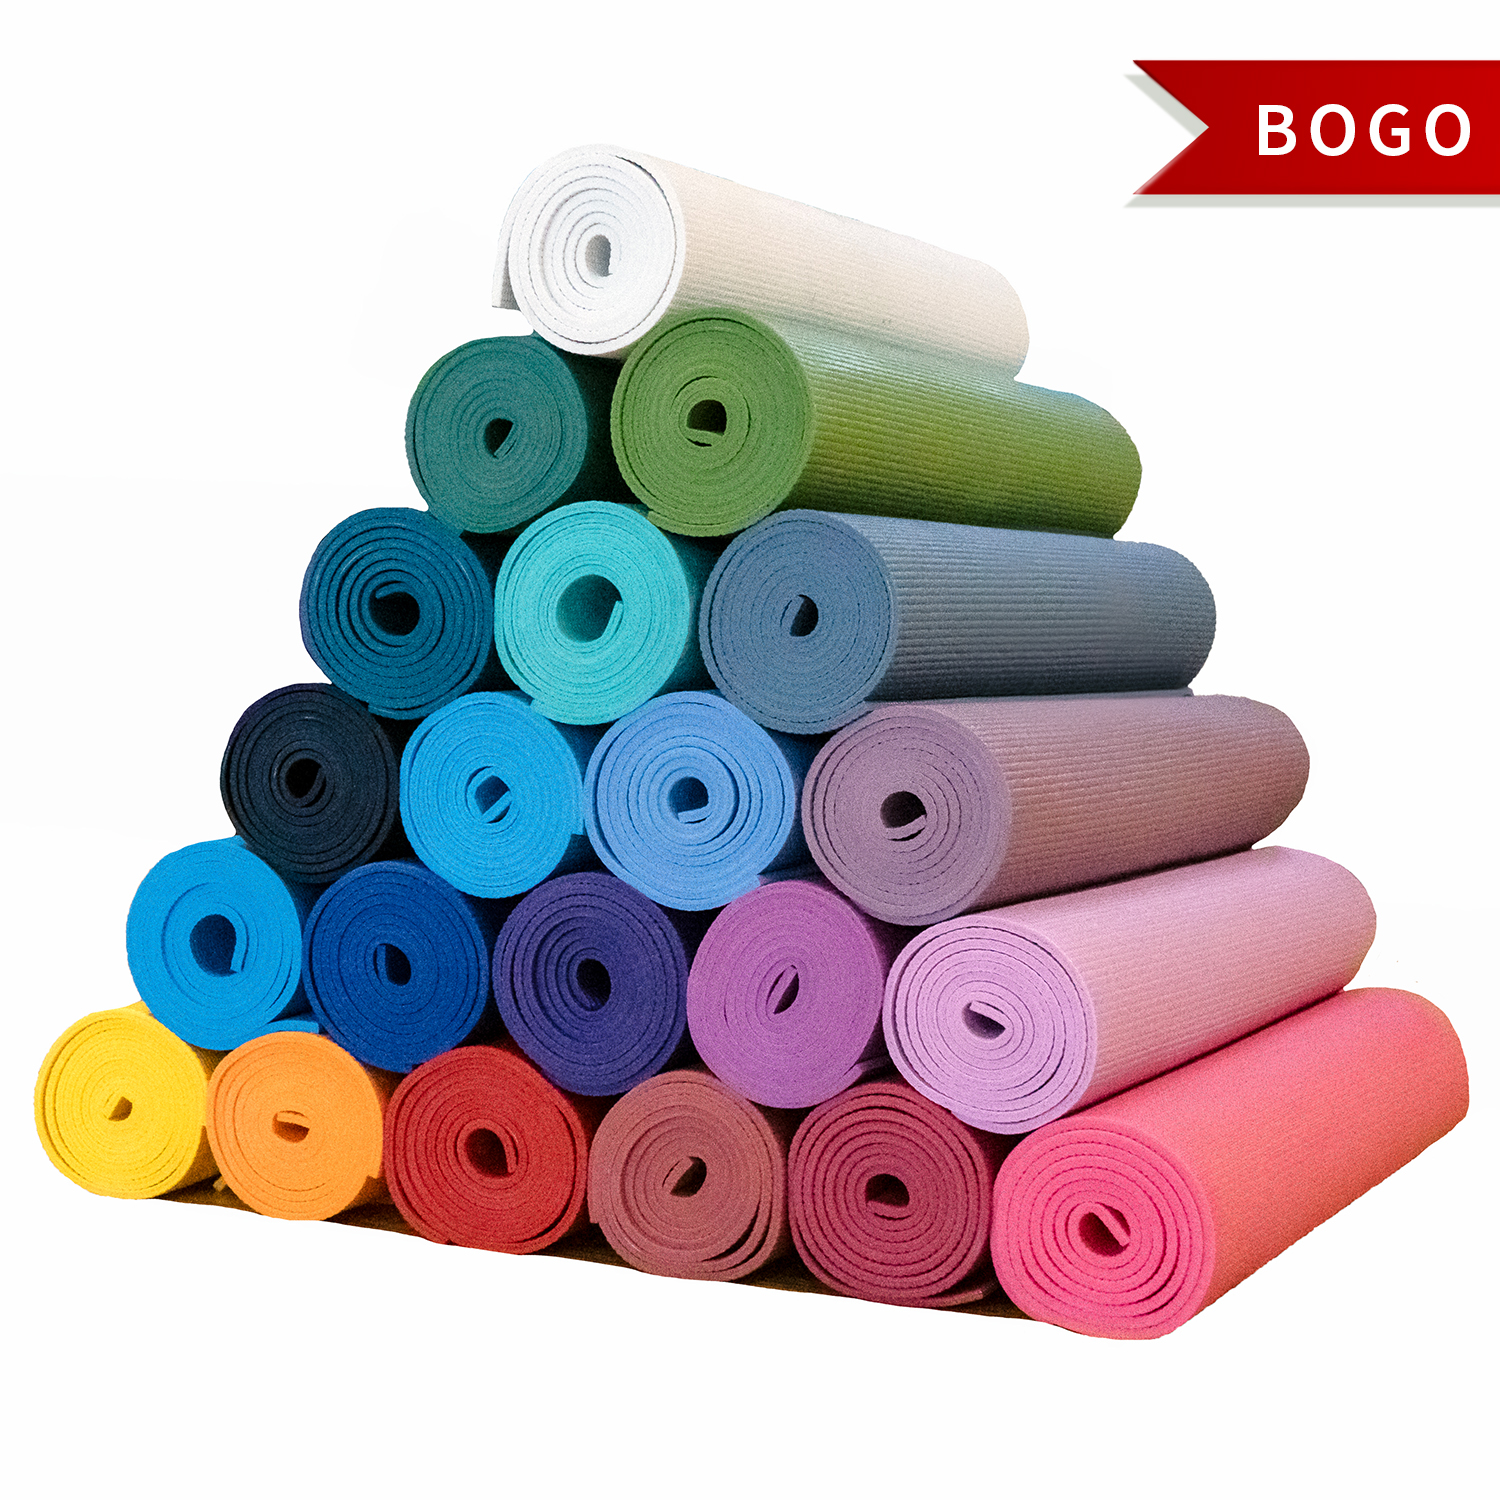 Yoga Accessories 1 4 Extra Thick Deluxe Yoga Mat Buy One Get One Free